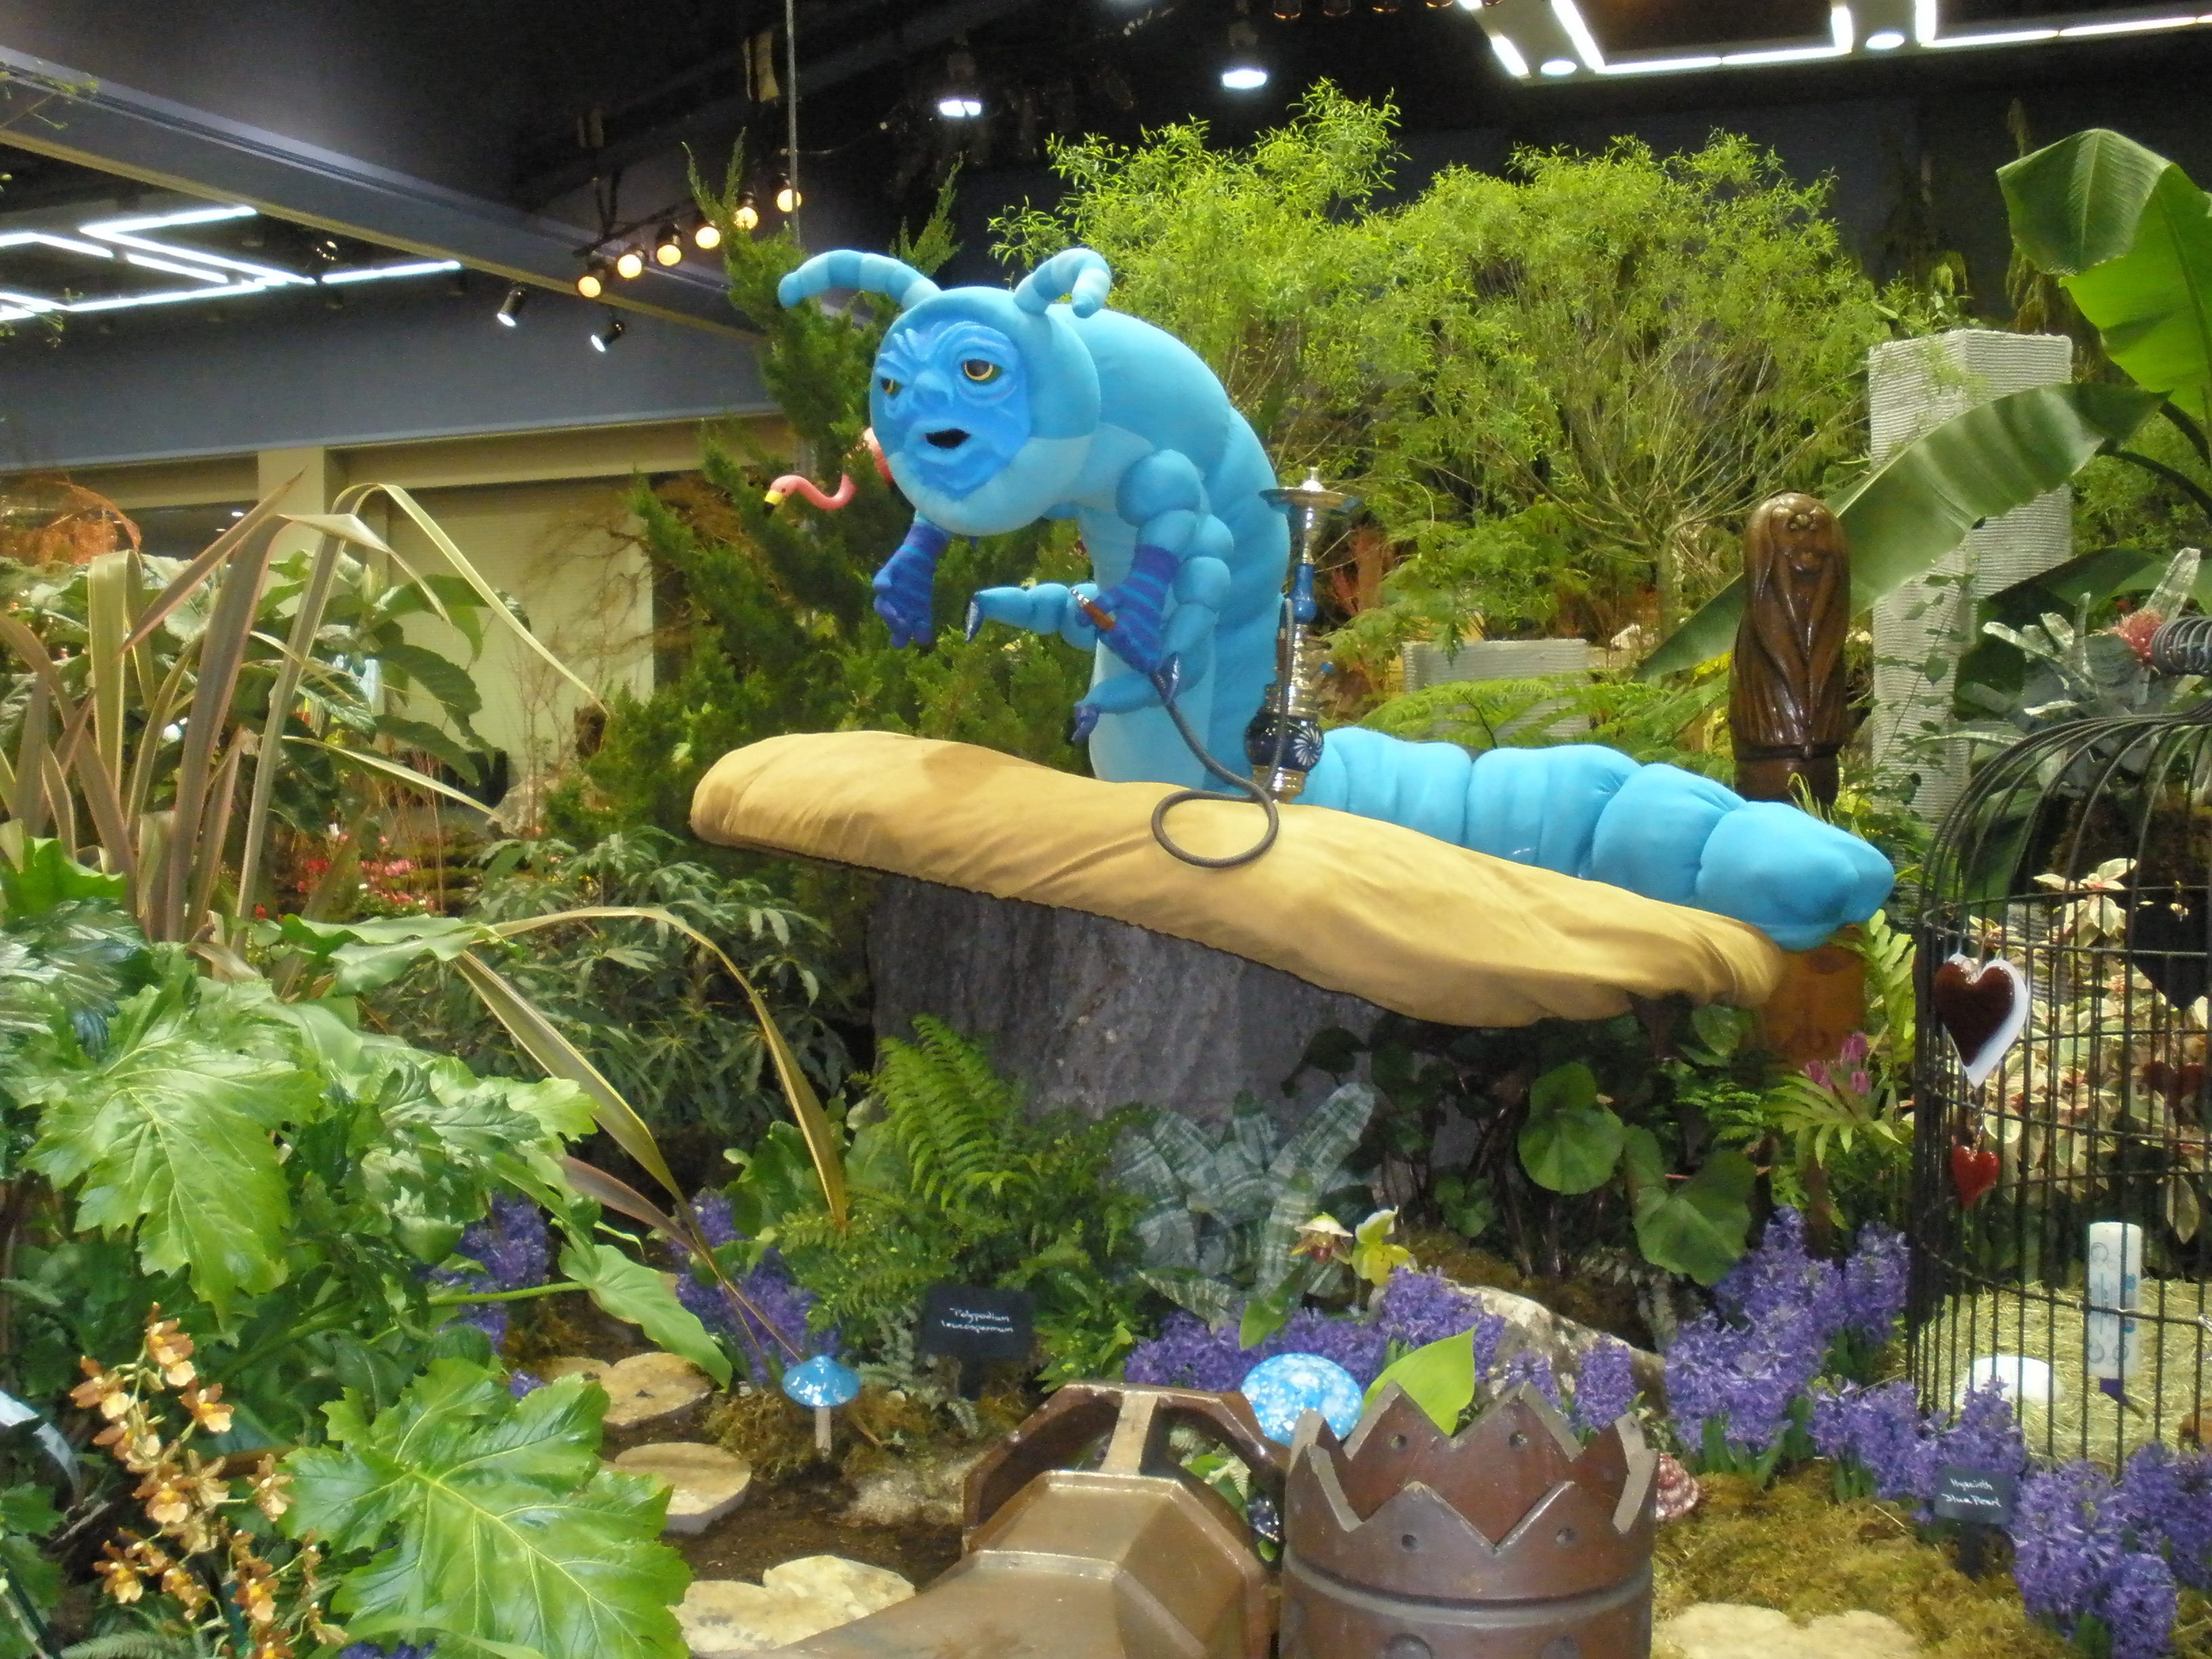 Figments studio blog thoughts and updates from jill - Alice in wonderland outdoor decorations ...